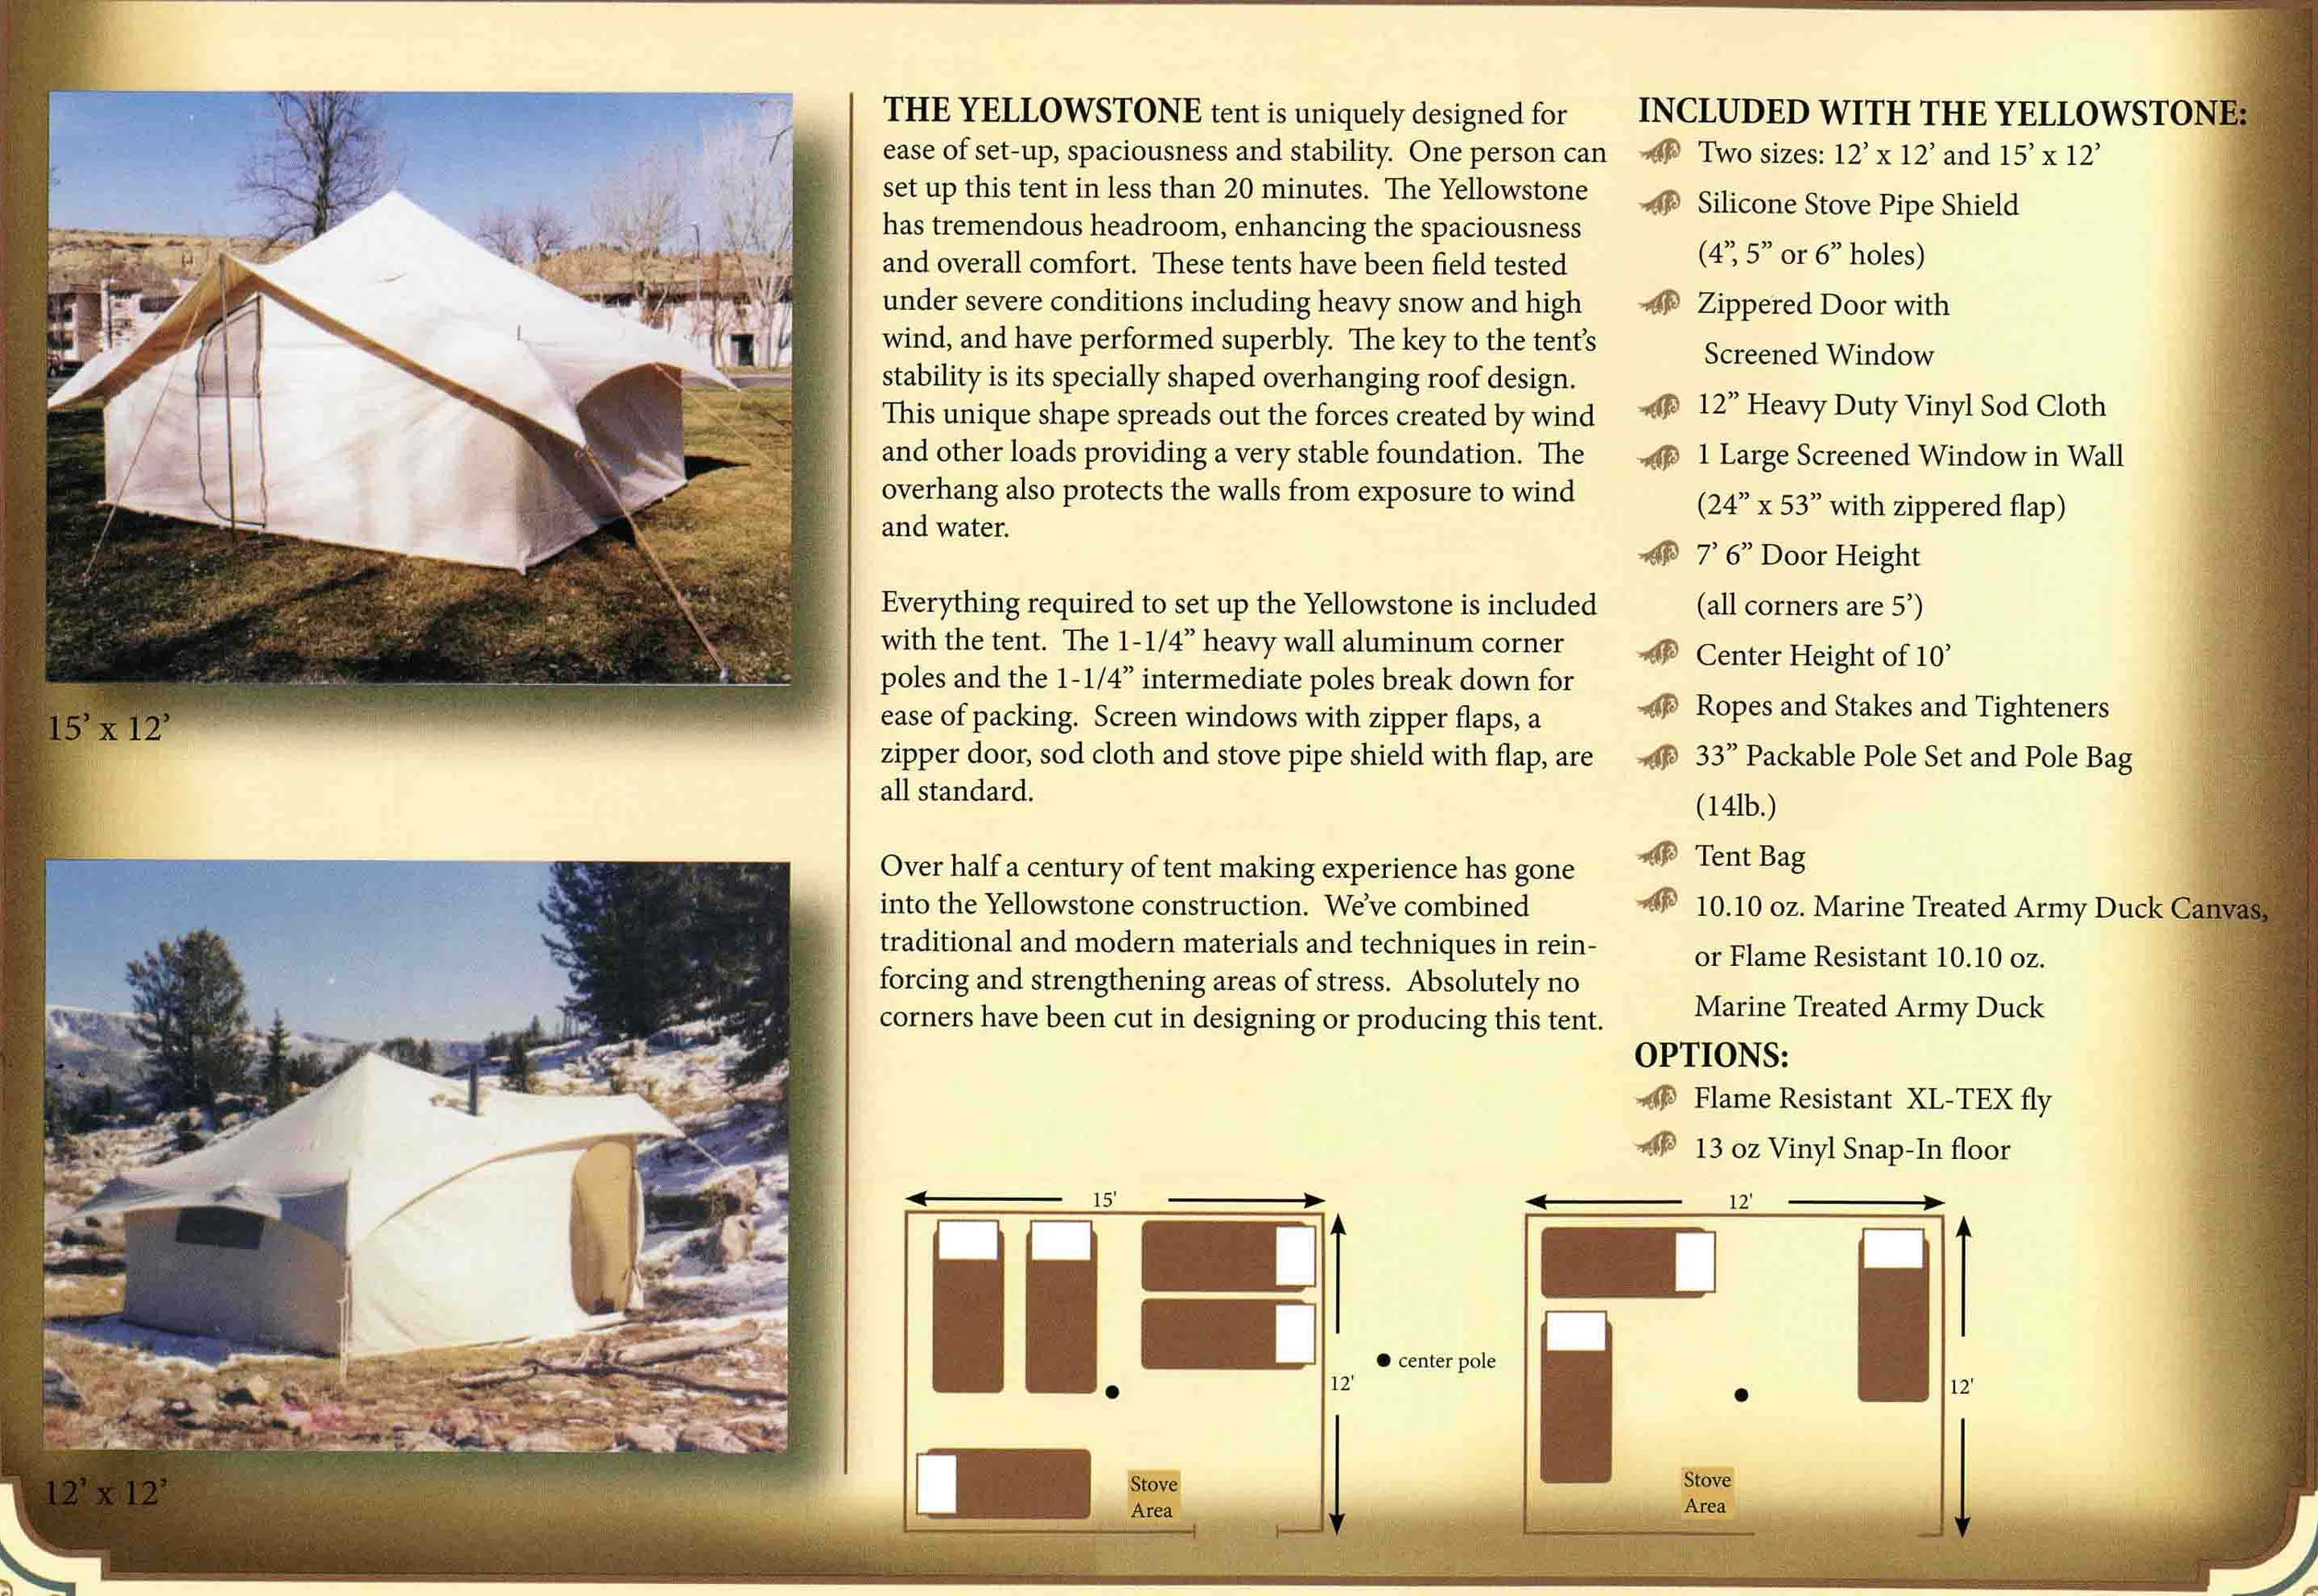 Spike tents for sale, The Yellowstone tent